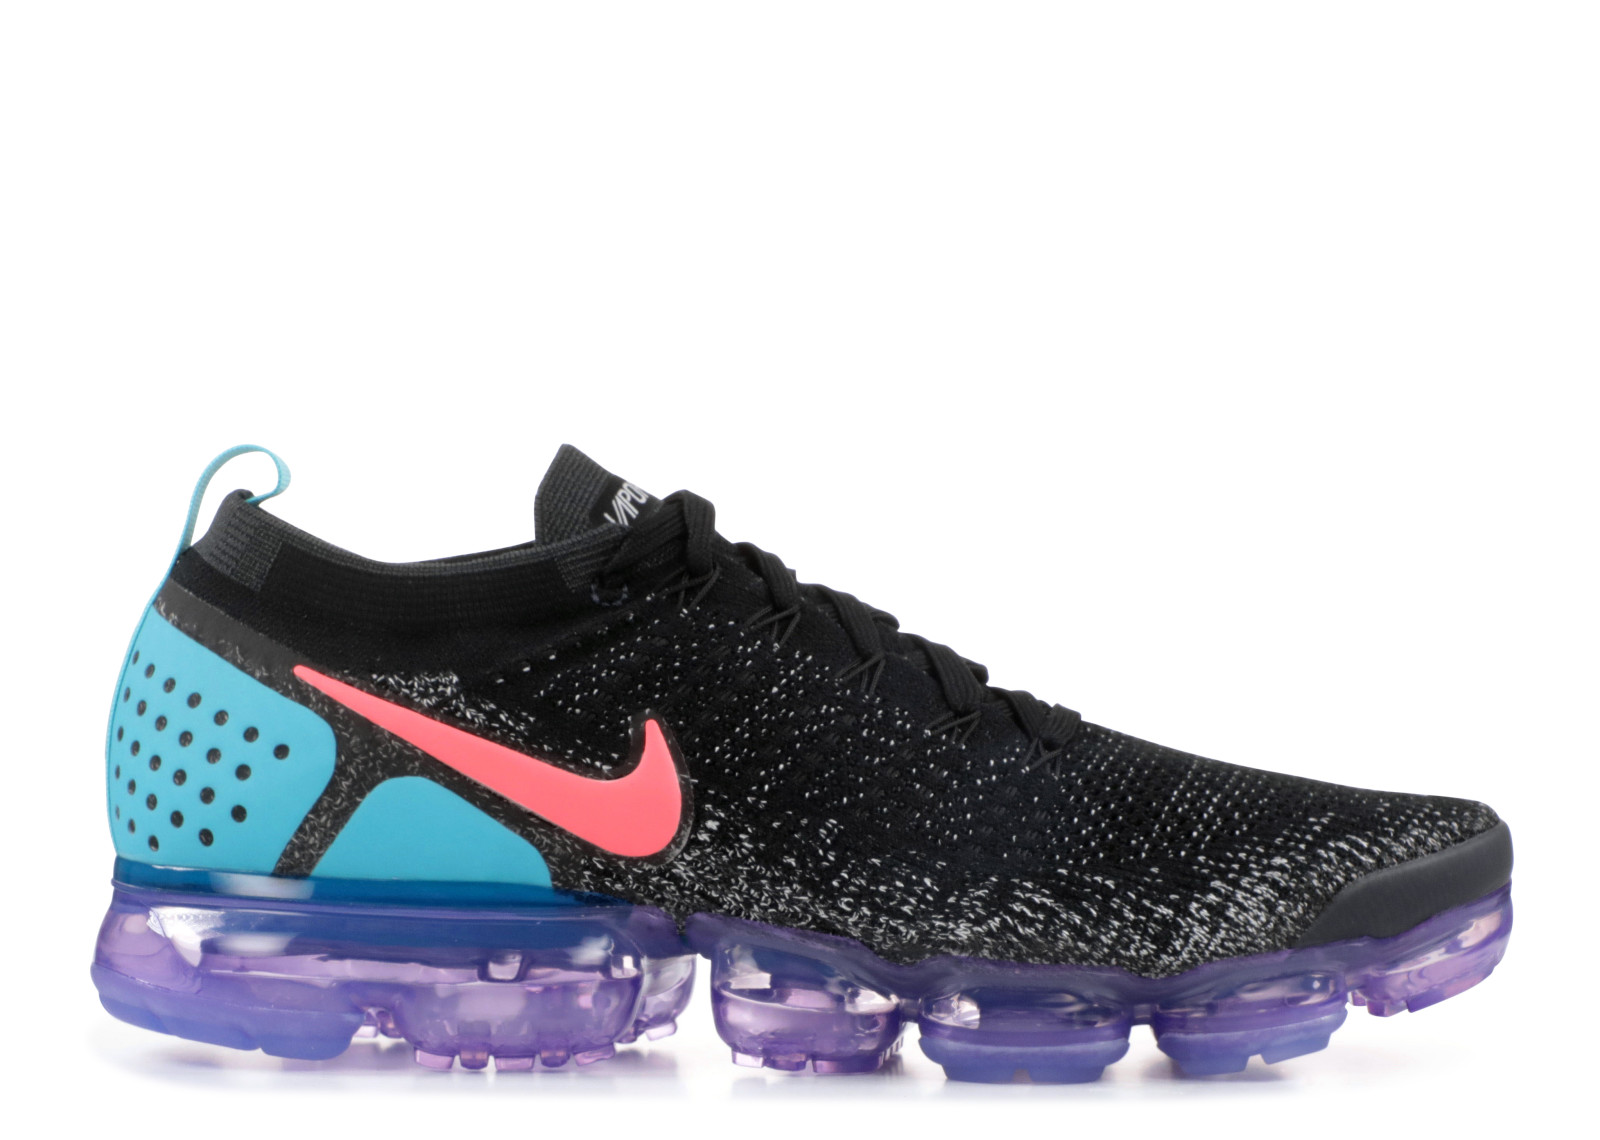 2bbbaf834370d Nike Air VaporMax 2.0 Black Hot Punch - 0